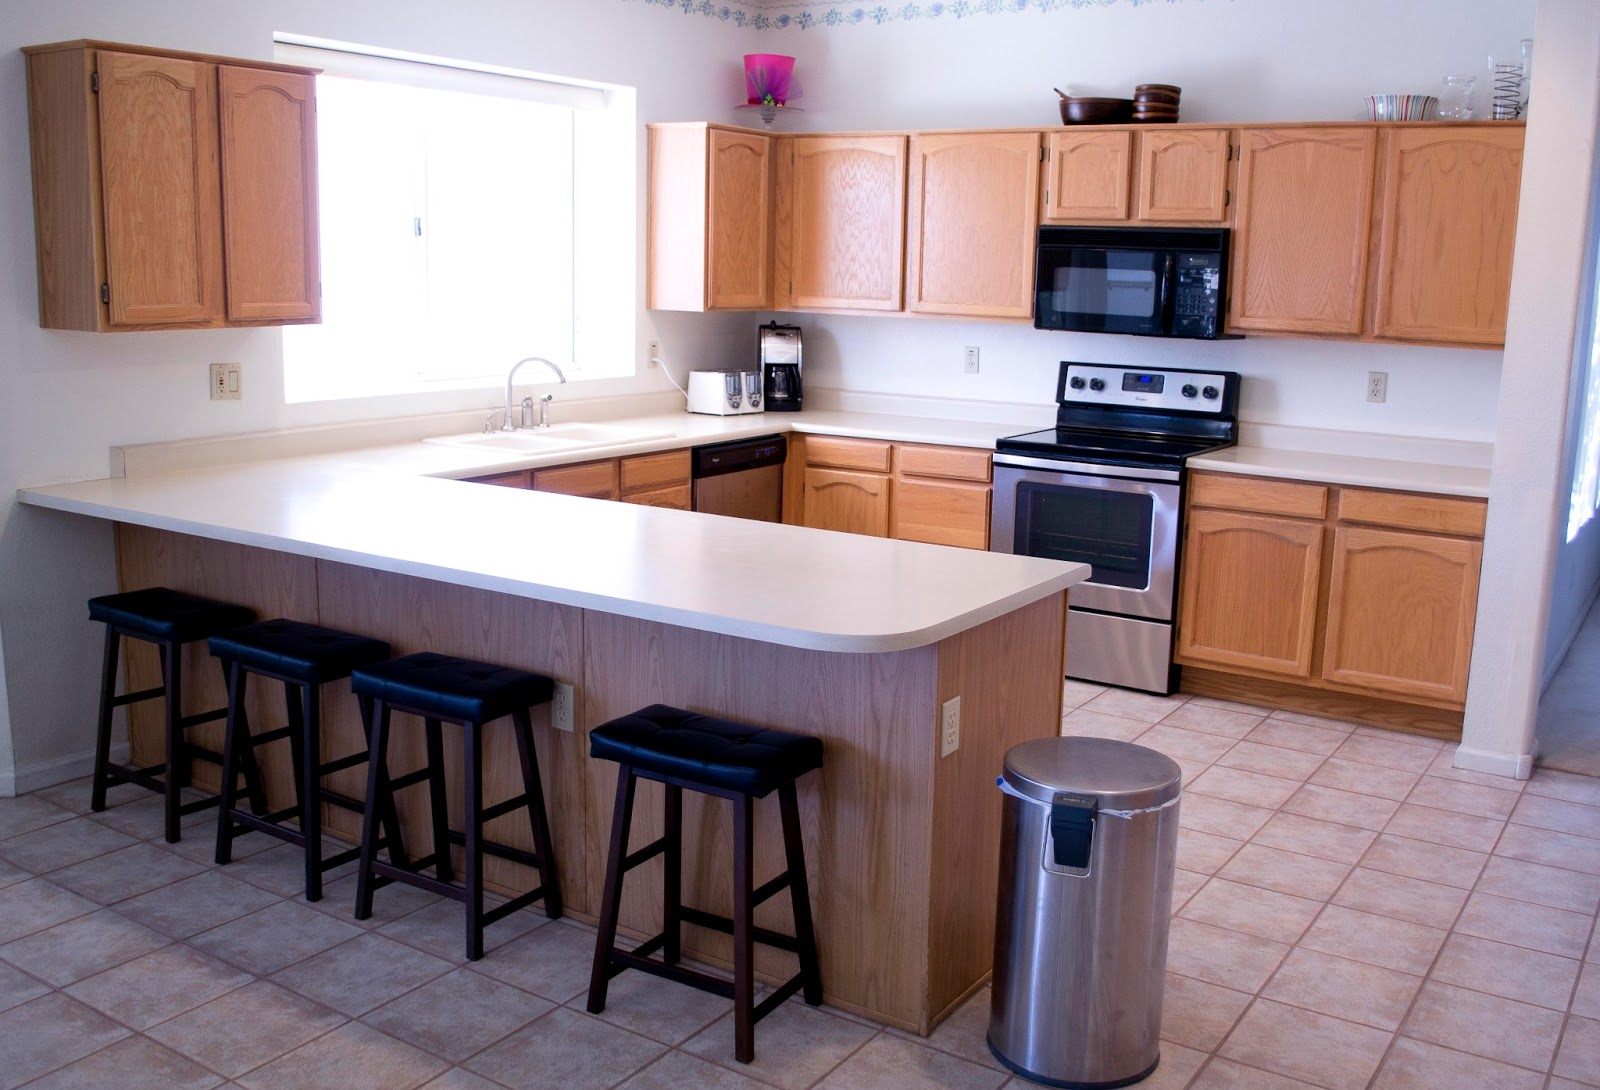 price pricing best cost uncategorized files square countertop the trend for granite quartz countertops per white and bathroom styles image foot